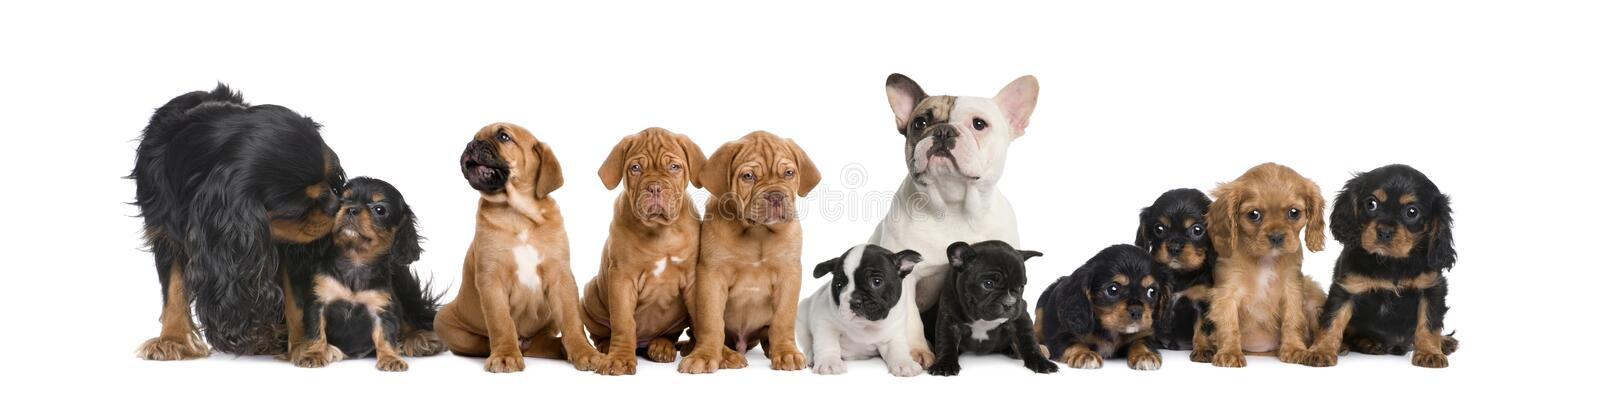 Group of dogs sitting in front of white background stock images